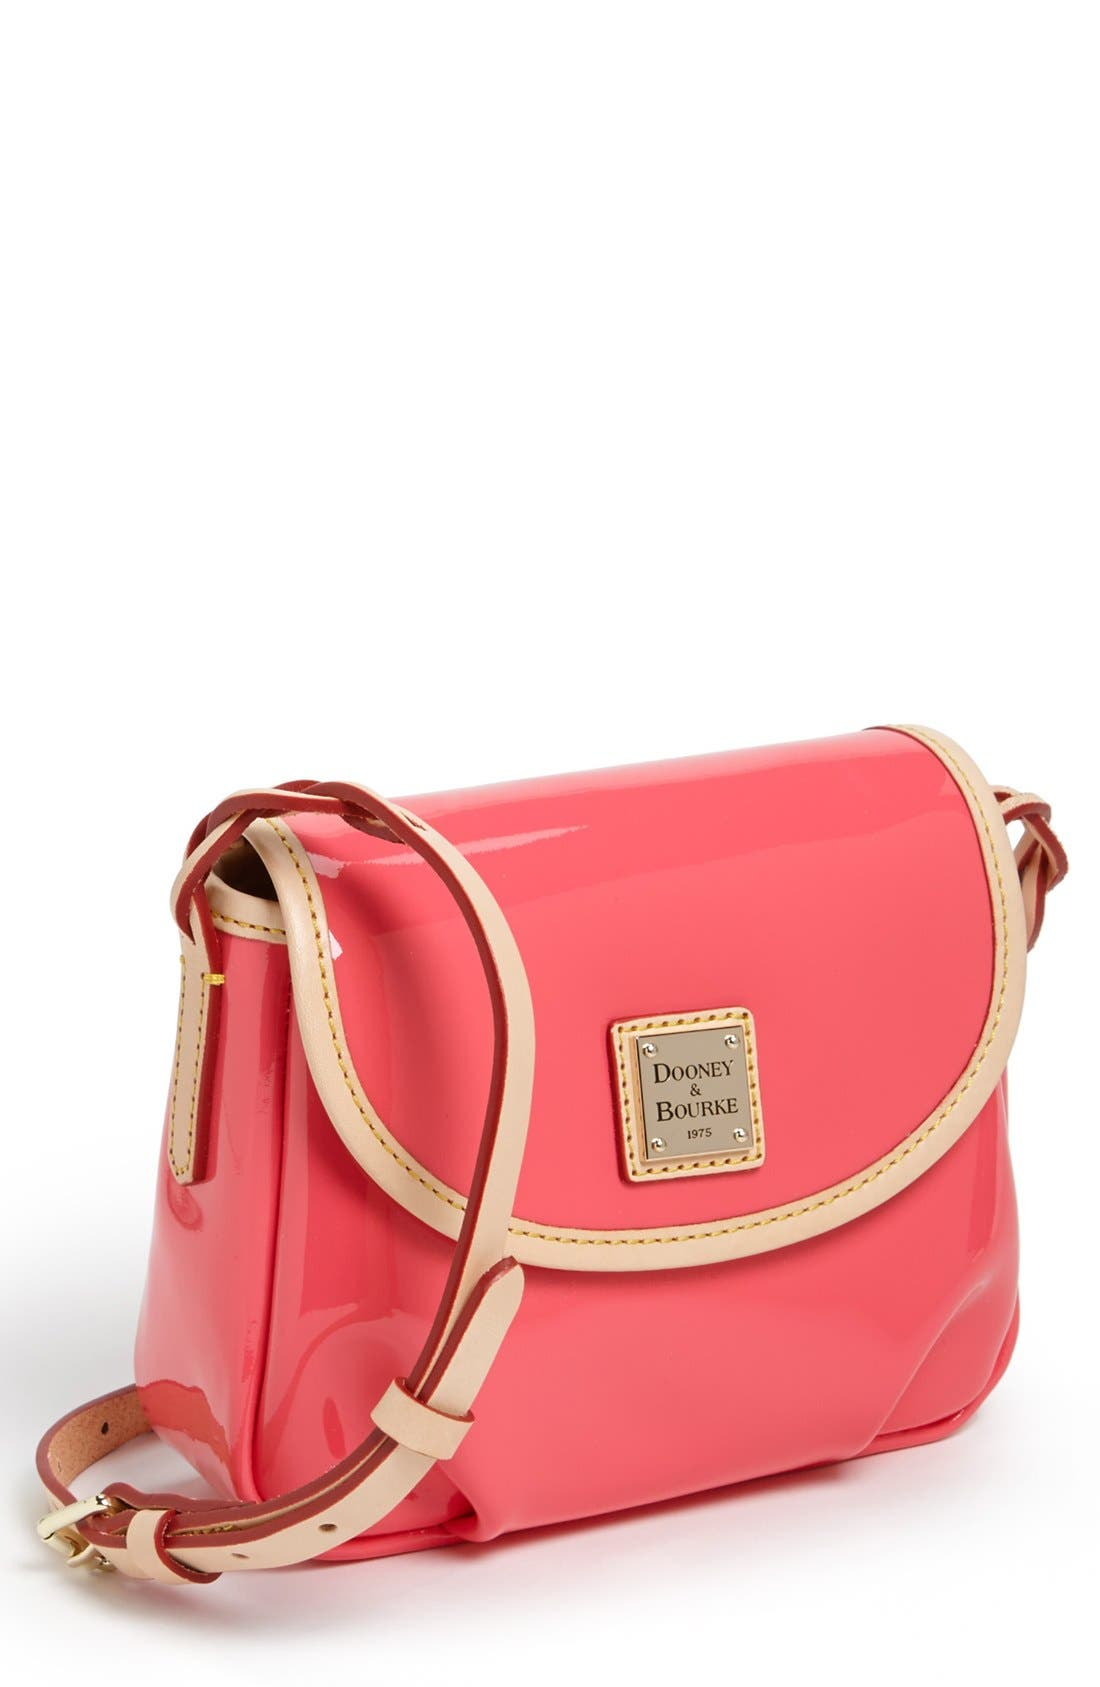 Alternate Image 1 Selected - Dooney & Bourke Patent Leather Crossbody Bag